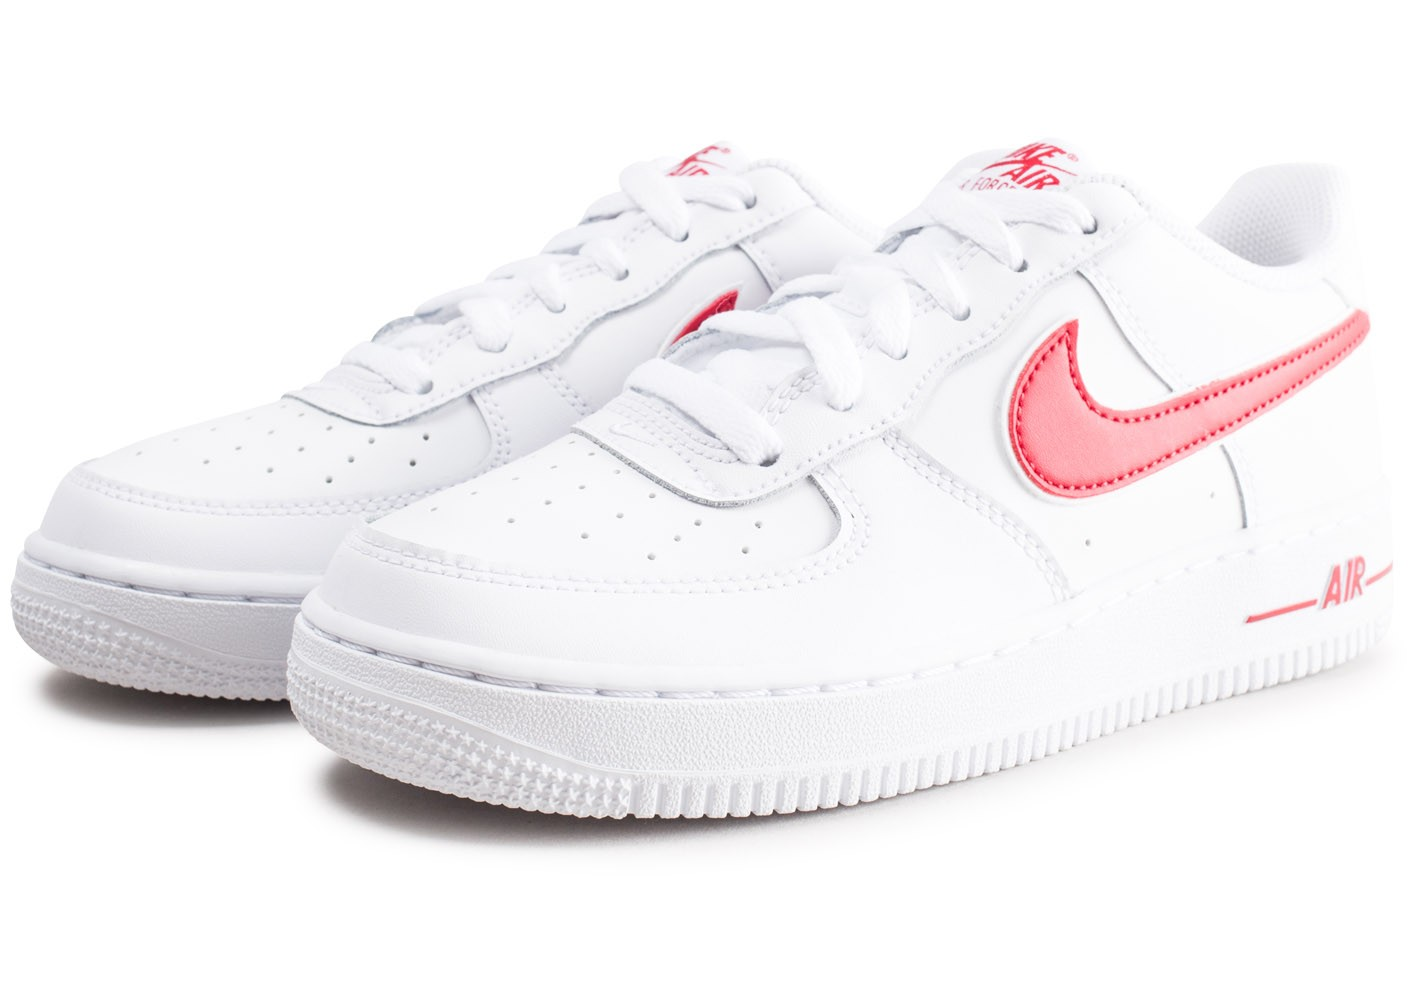 Nike Air Force 1 Low blanche et rouge junior Chaussures